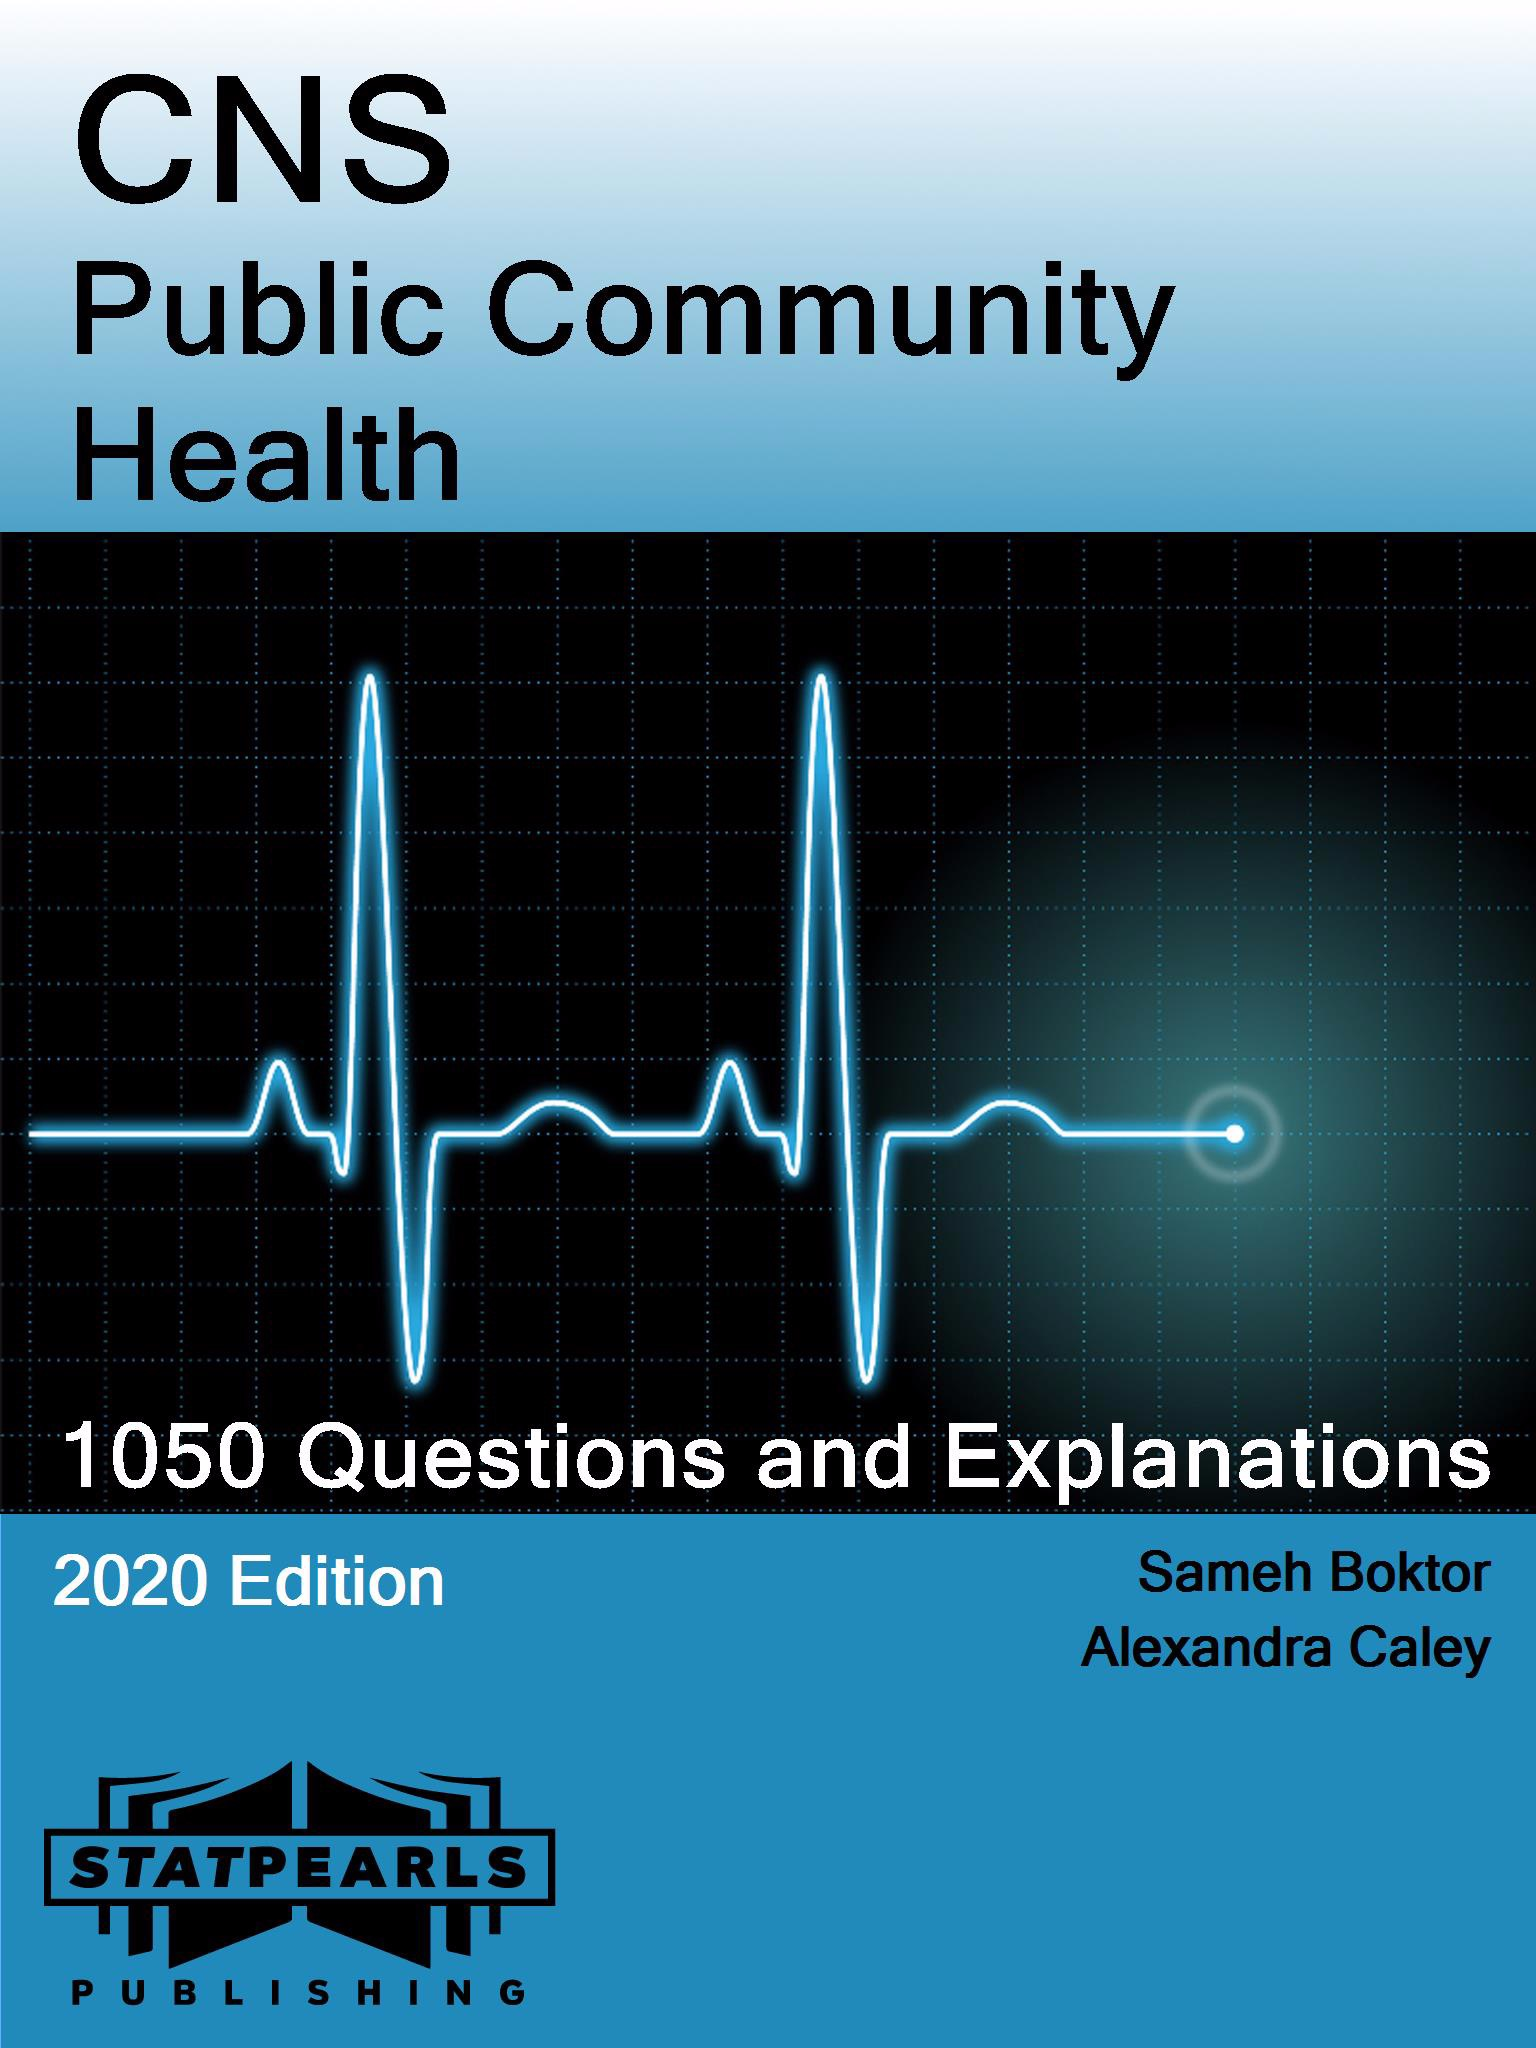 CNS Public Community Health